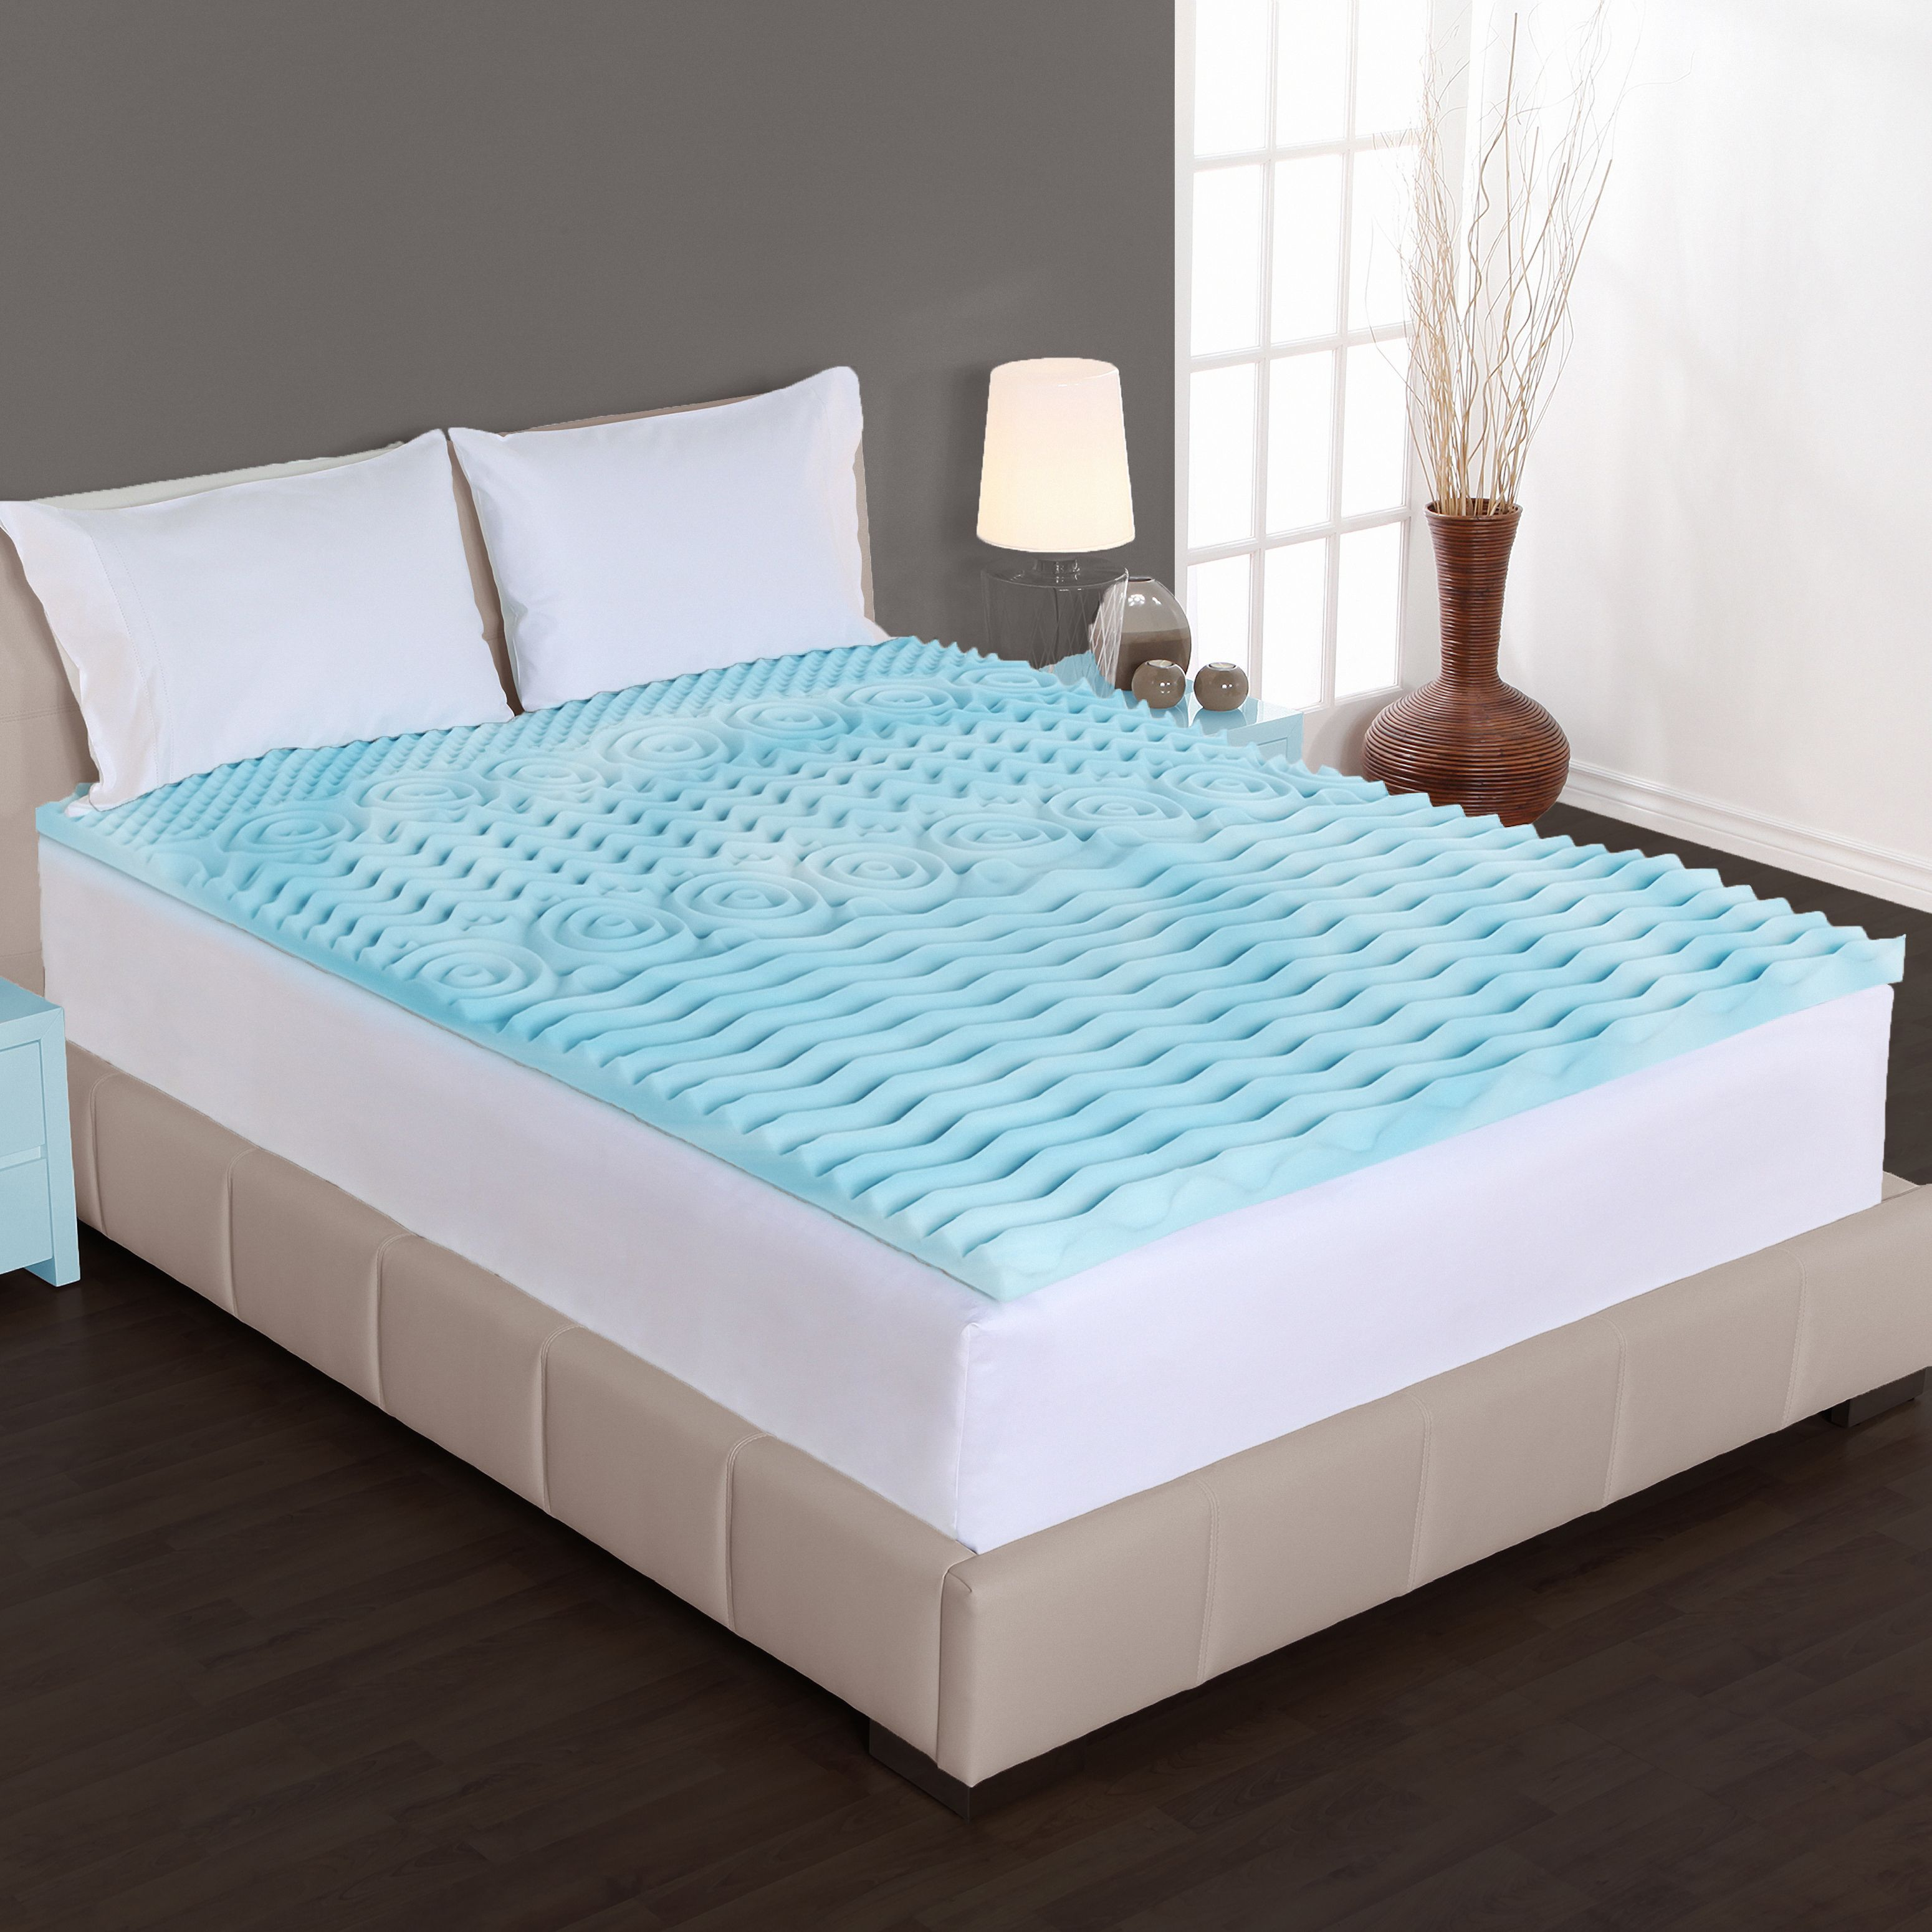 Foam Mattress Or Orthopedic Mattress